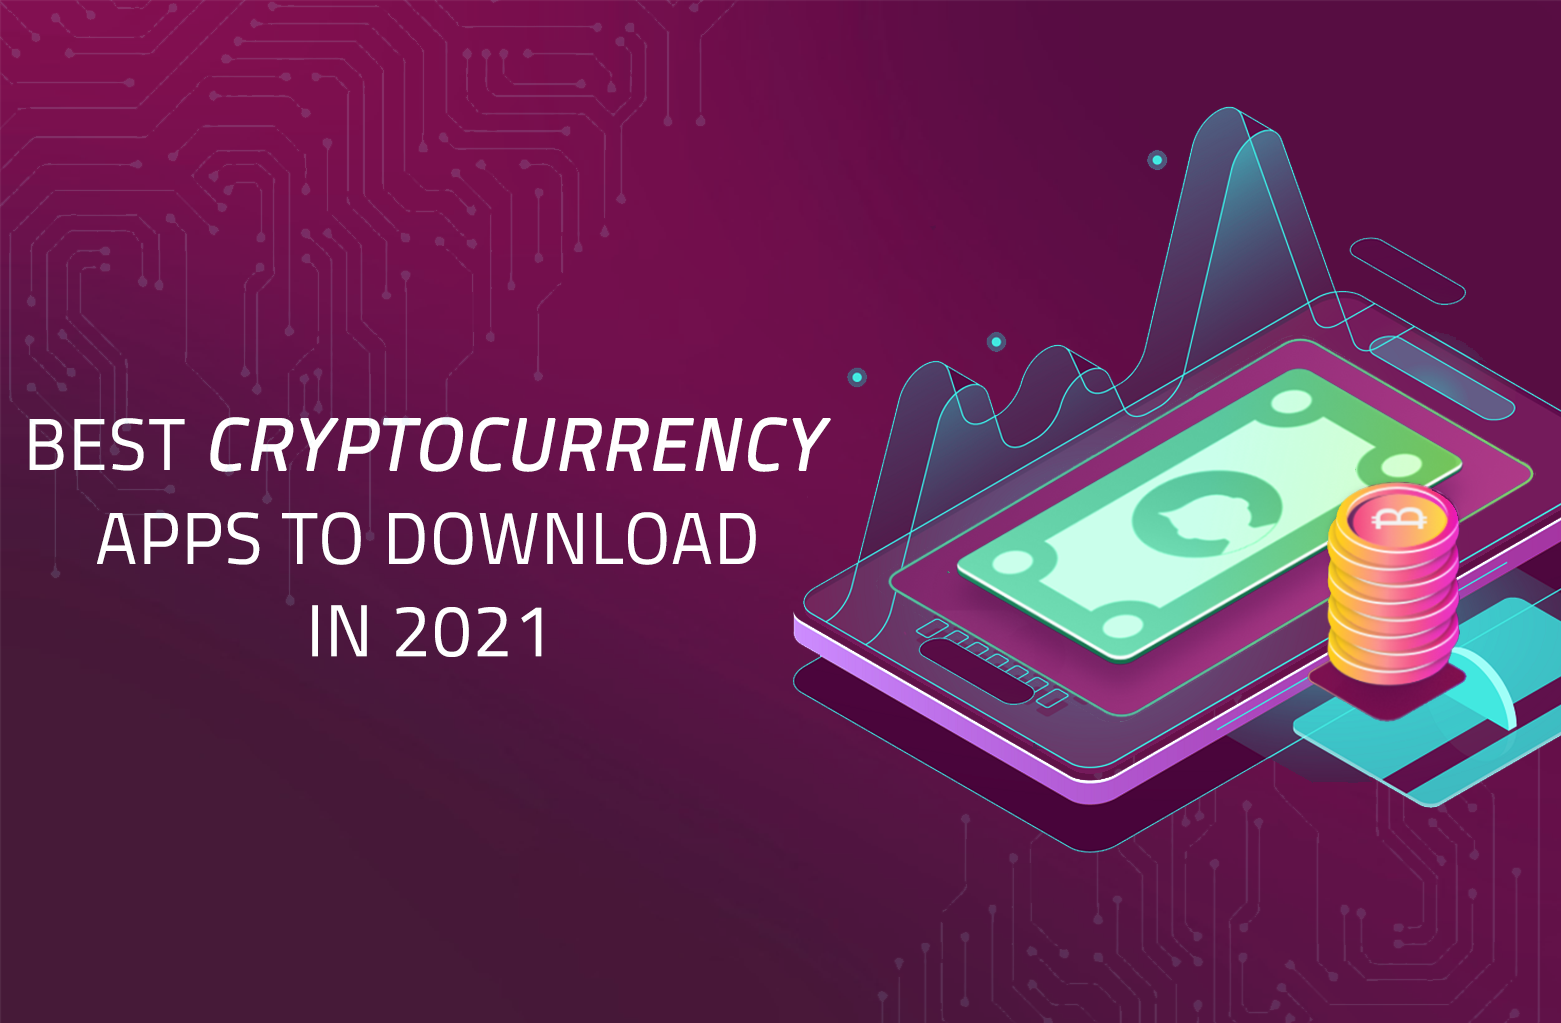 Best Cryptocurrency Apps to Download in 2021